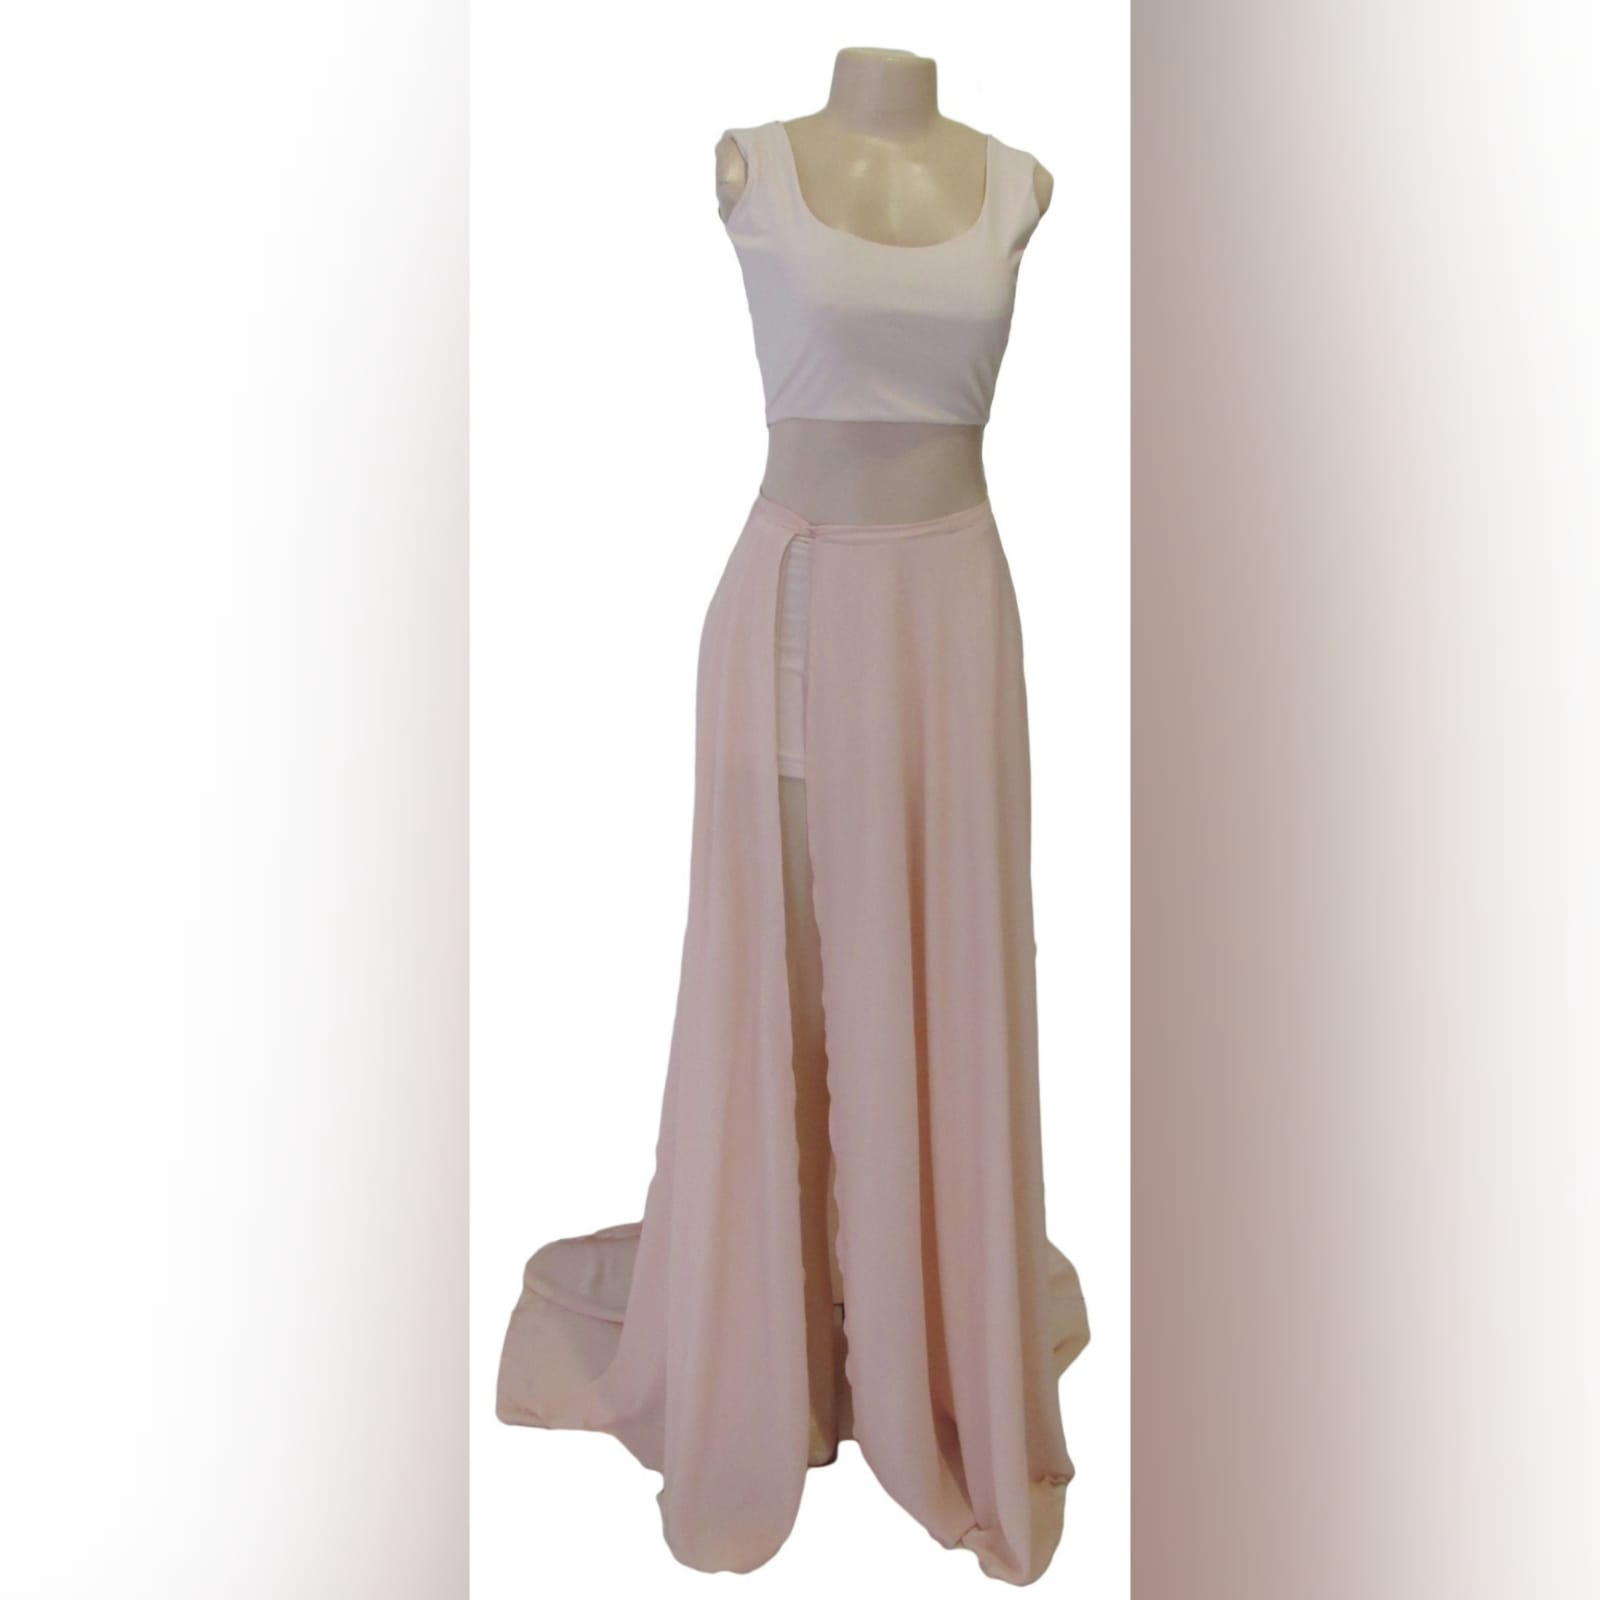 2 piece nude and white smart casual prom dress 5 2 piece nude and white smart casual prom dress. White crop top with a rounded neckline, low open back closed with buttons. Long chiffon skirt with a slit and a train.